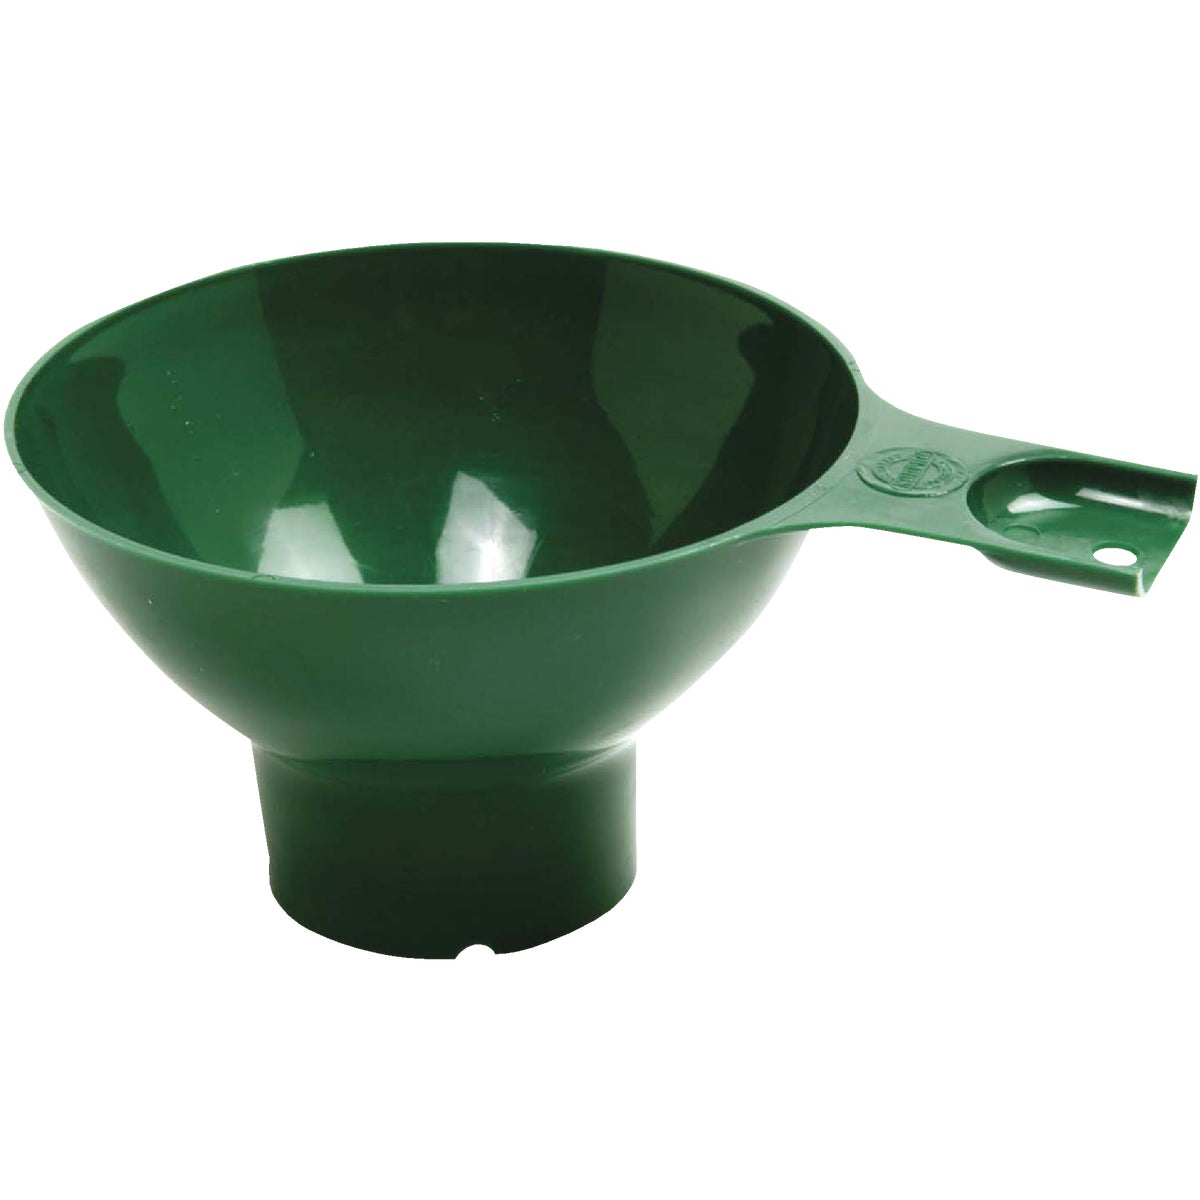 PLASTIC CANNING FUNNEL - 607 by Norpro